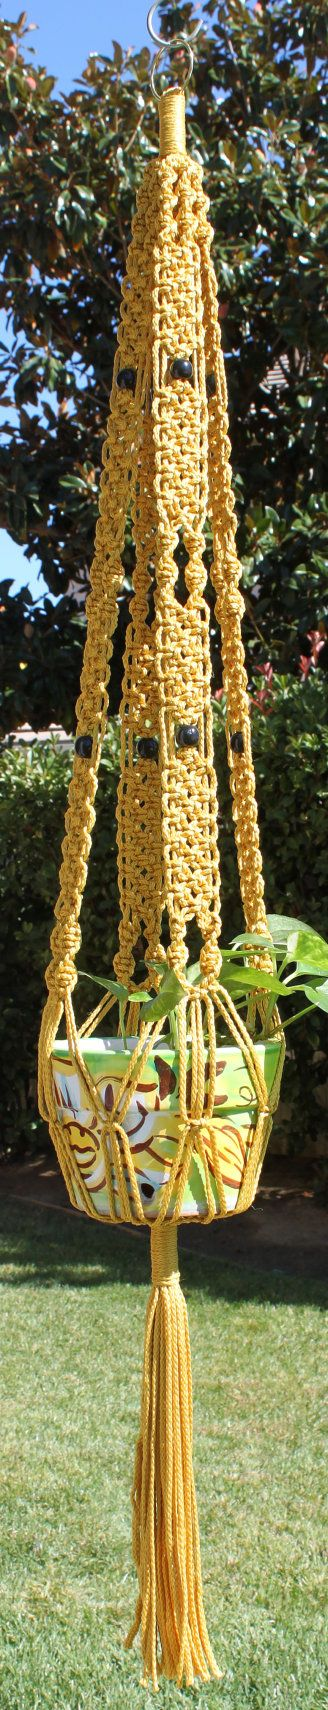 Handmade Macrame Plant Hanger Holder with Wood by ChironCreations